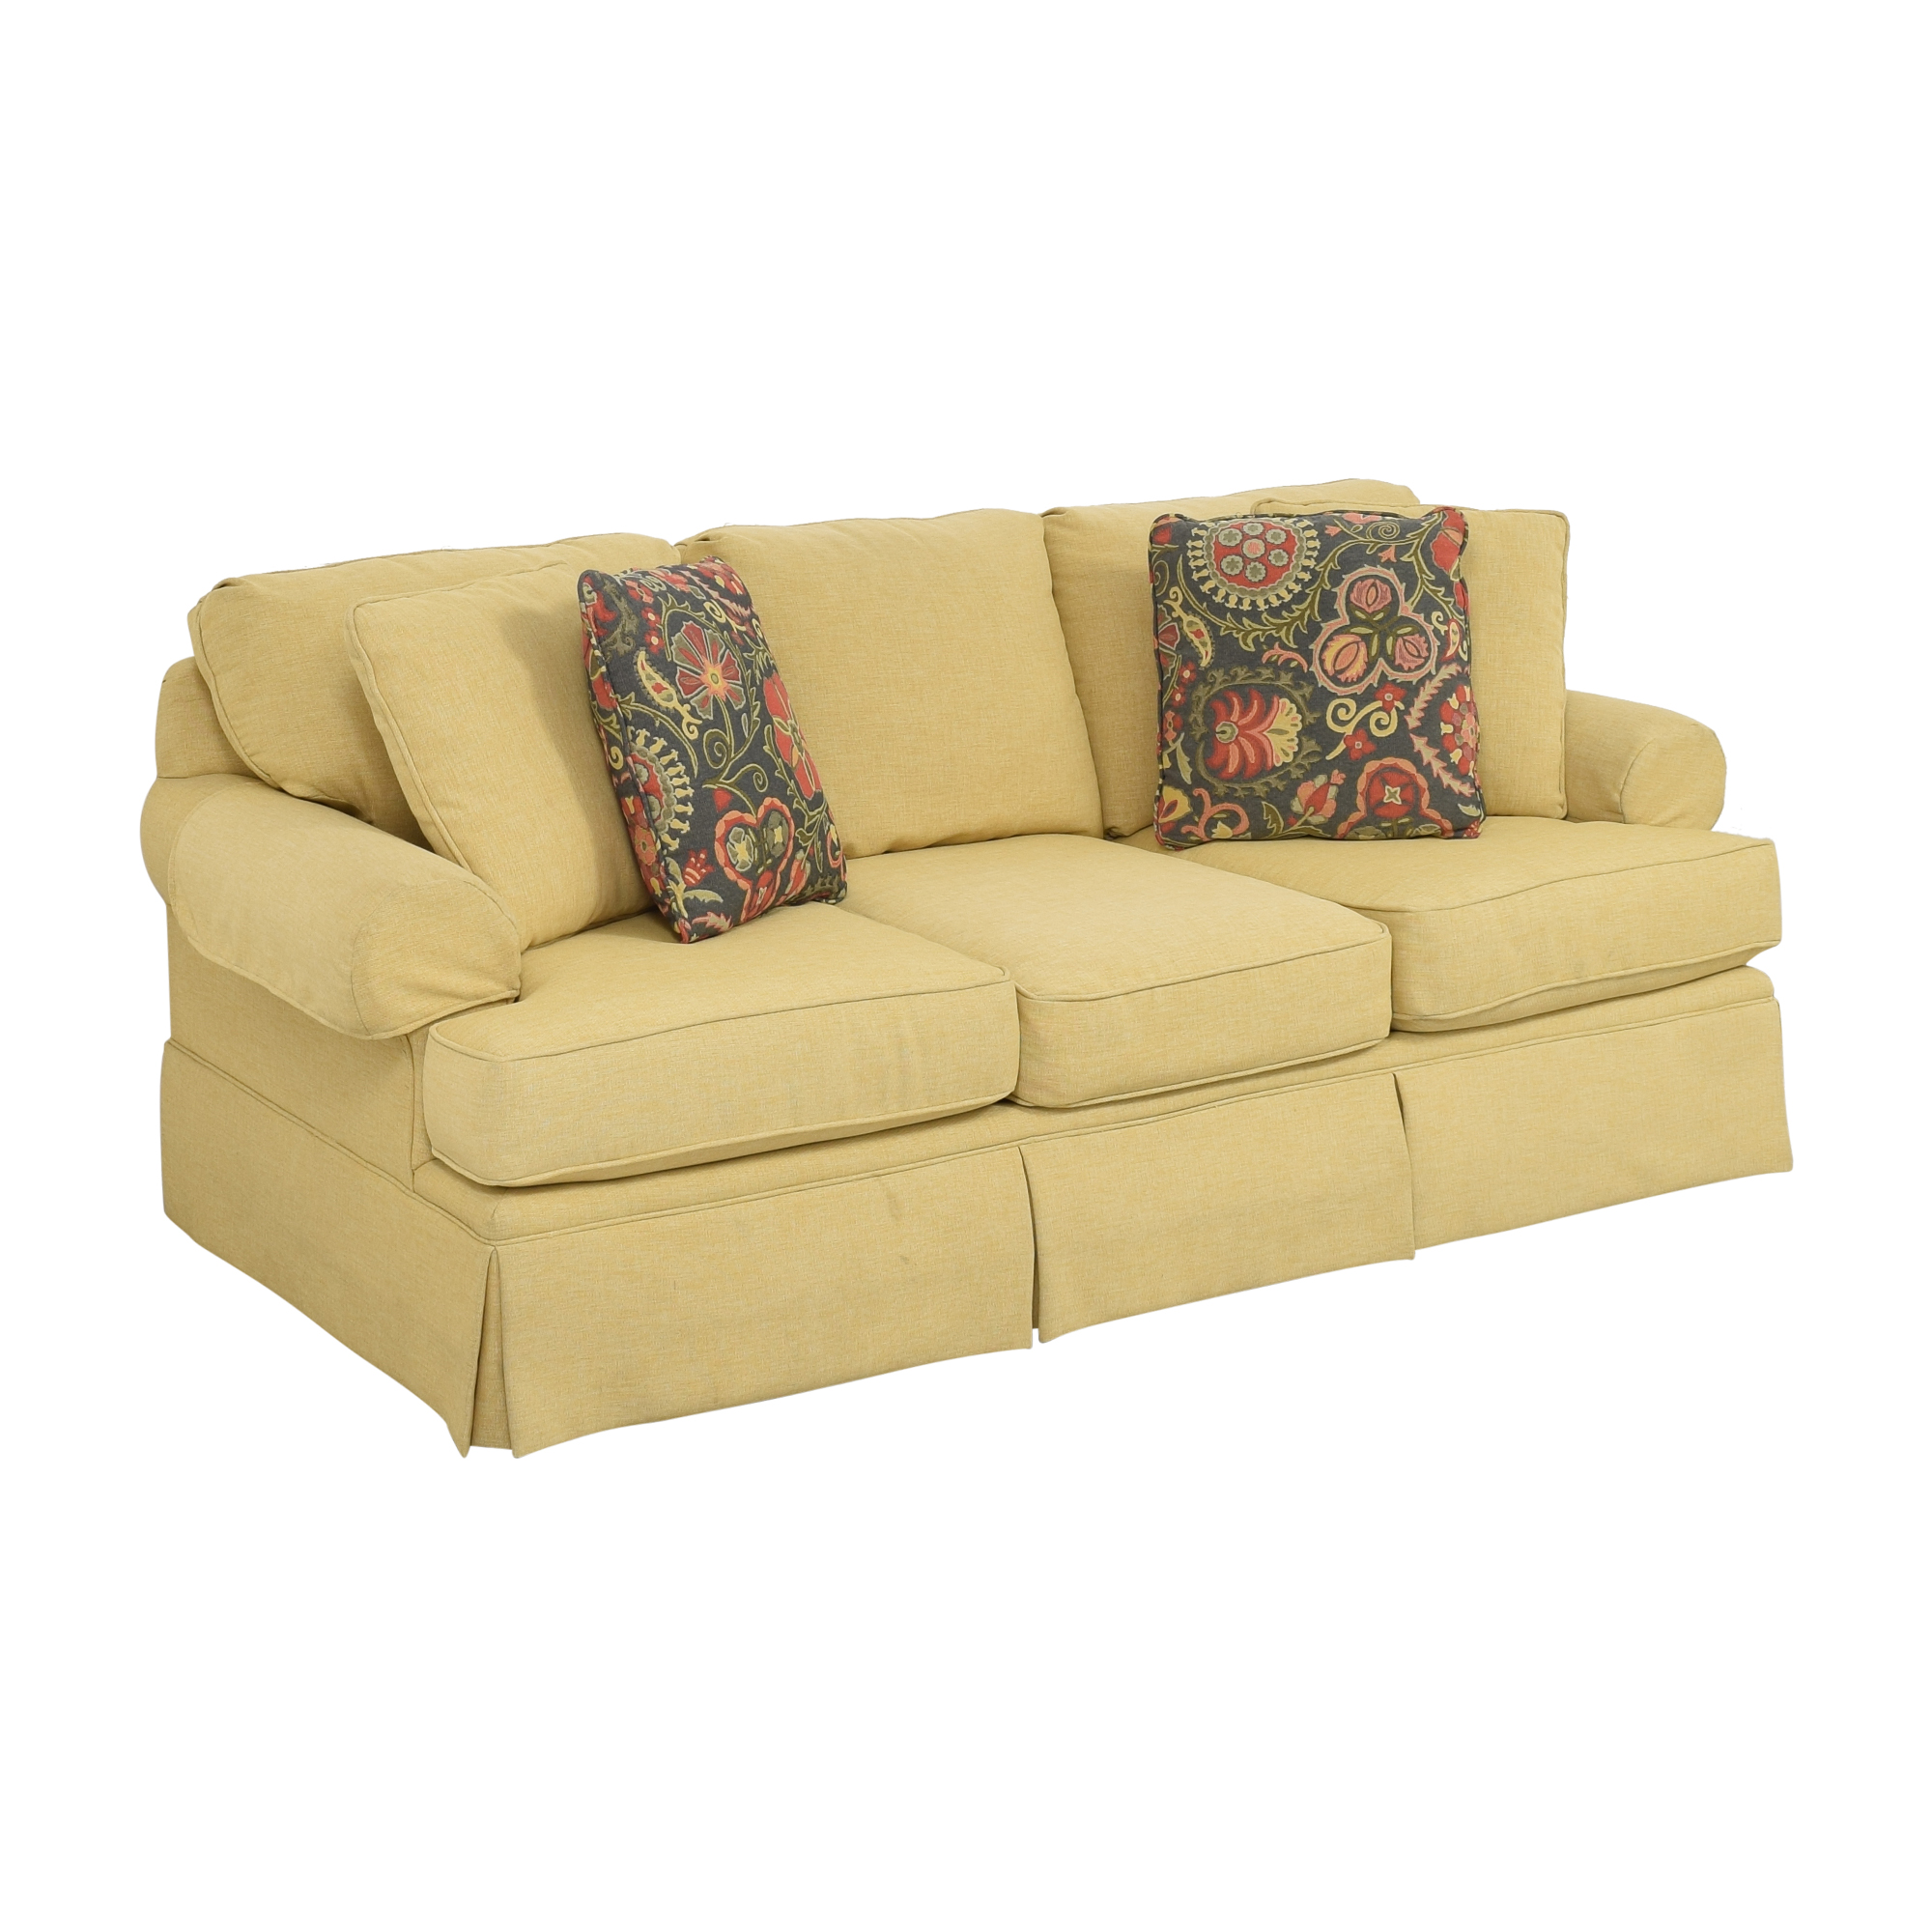 Craftmaster Furniture Craftmaster Furniture Three Cushion Sofa price